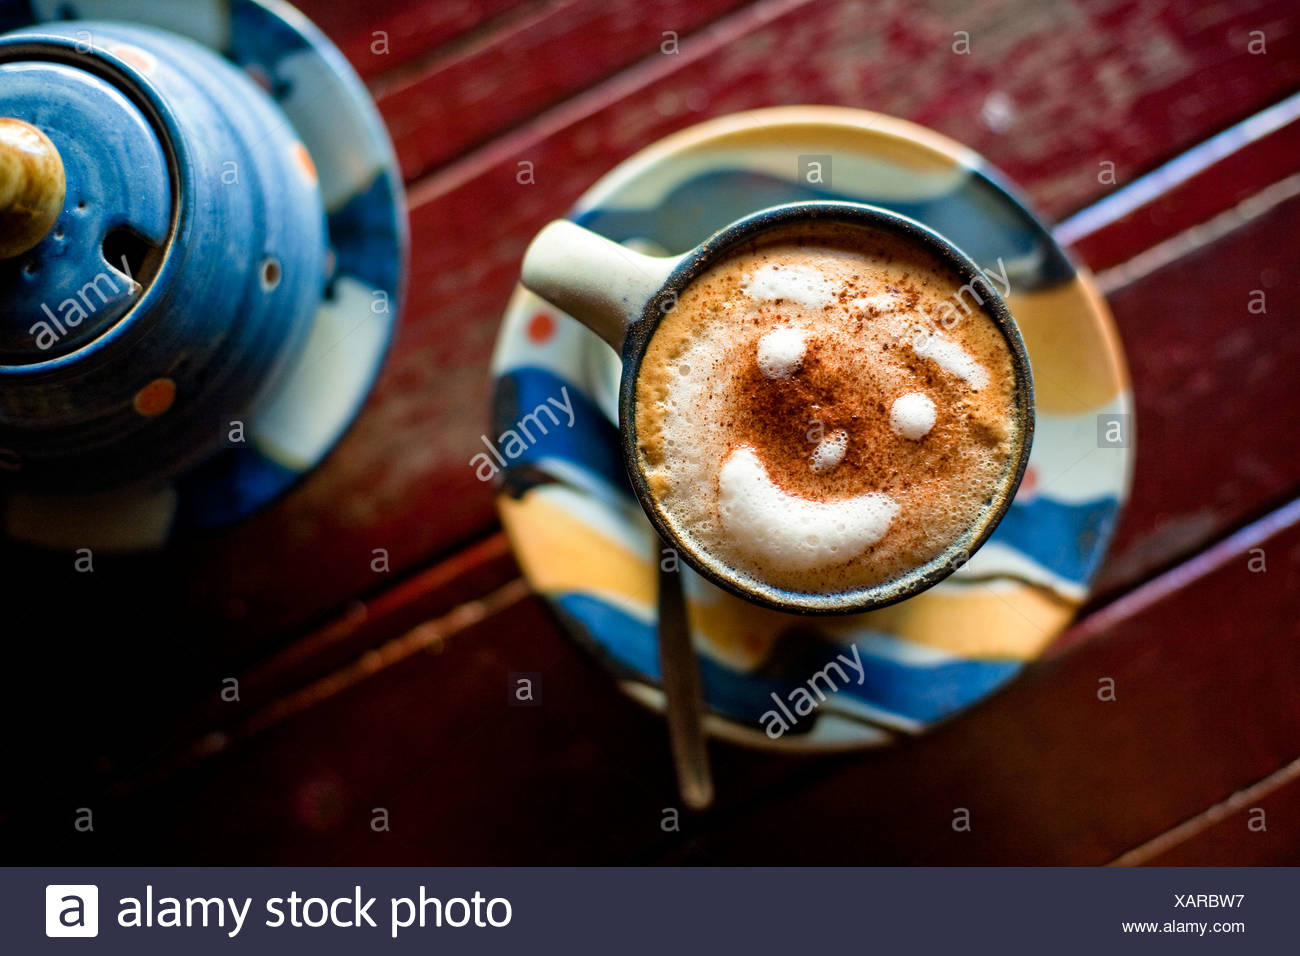 Close up photo of a cup of espresso with a smiling face made of foam. - Stock Image